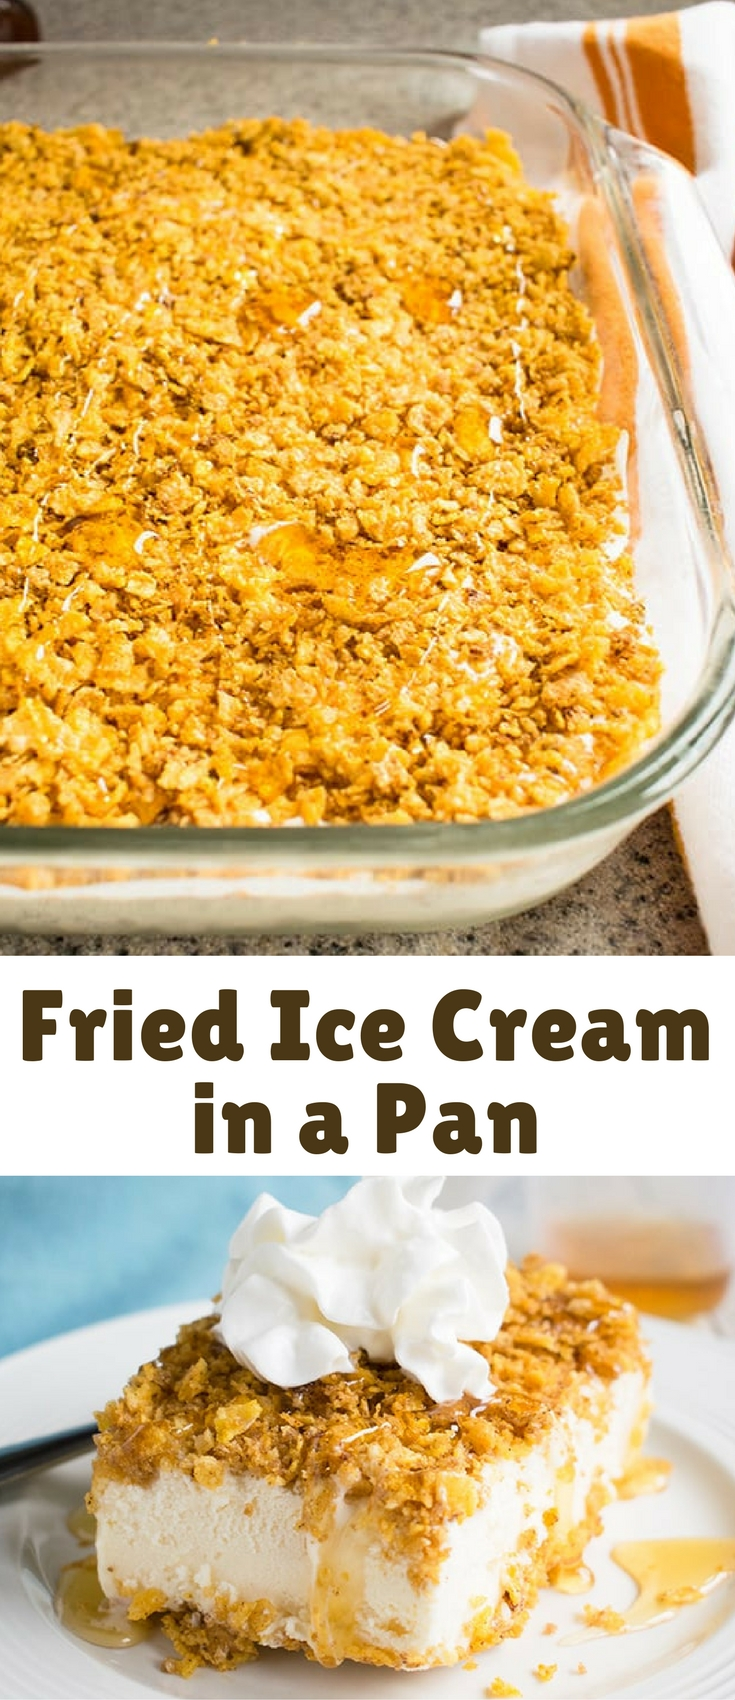 It's easy to make fried ice cream! Note, you'll need to let it freeze for at least five hours before serving.